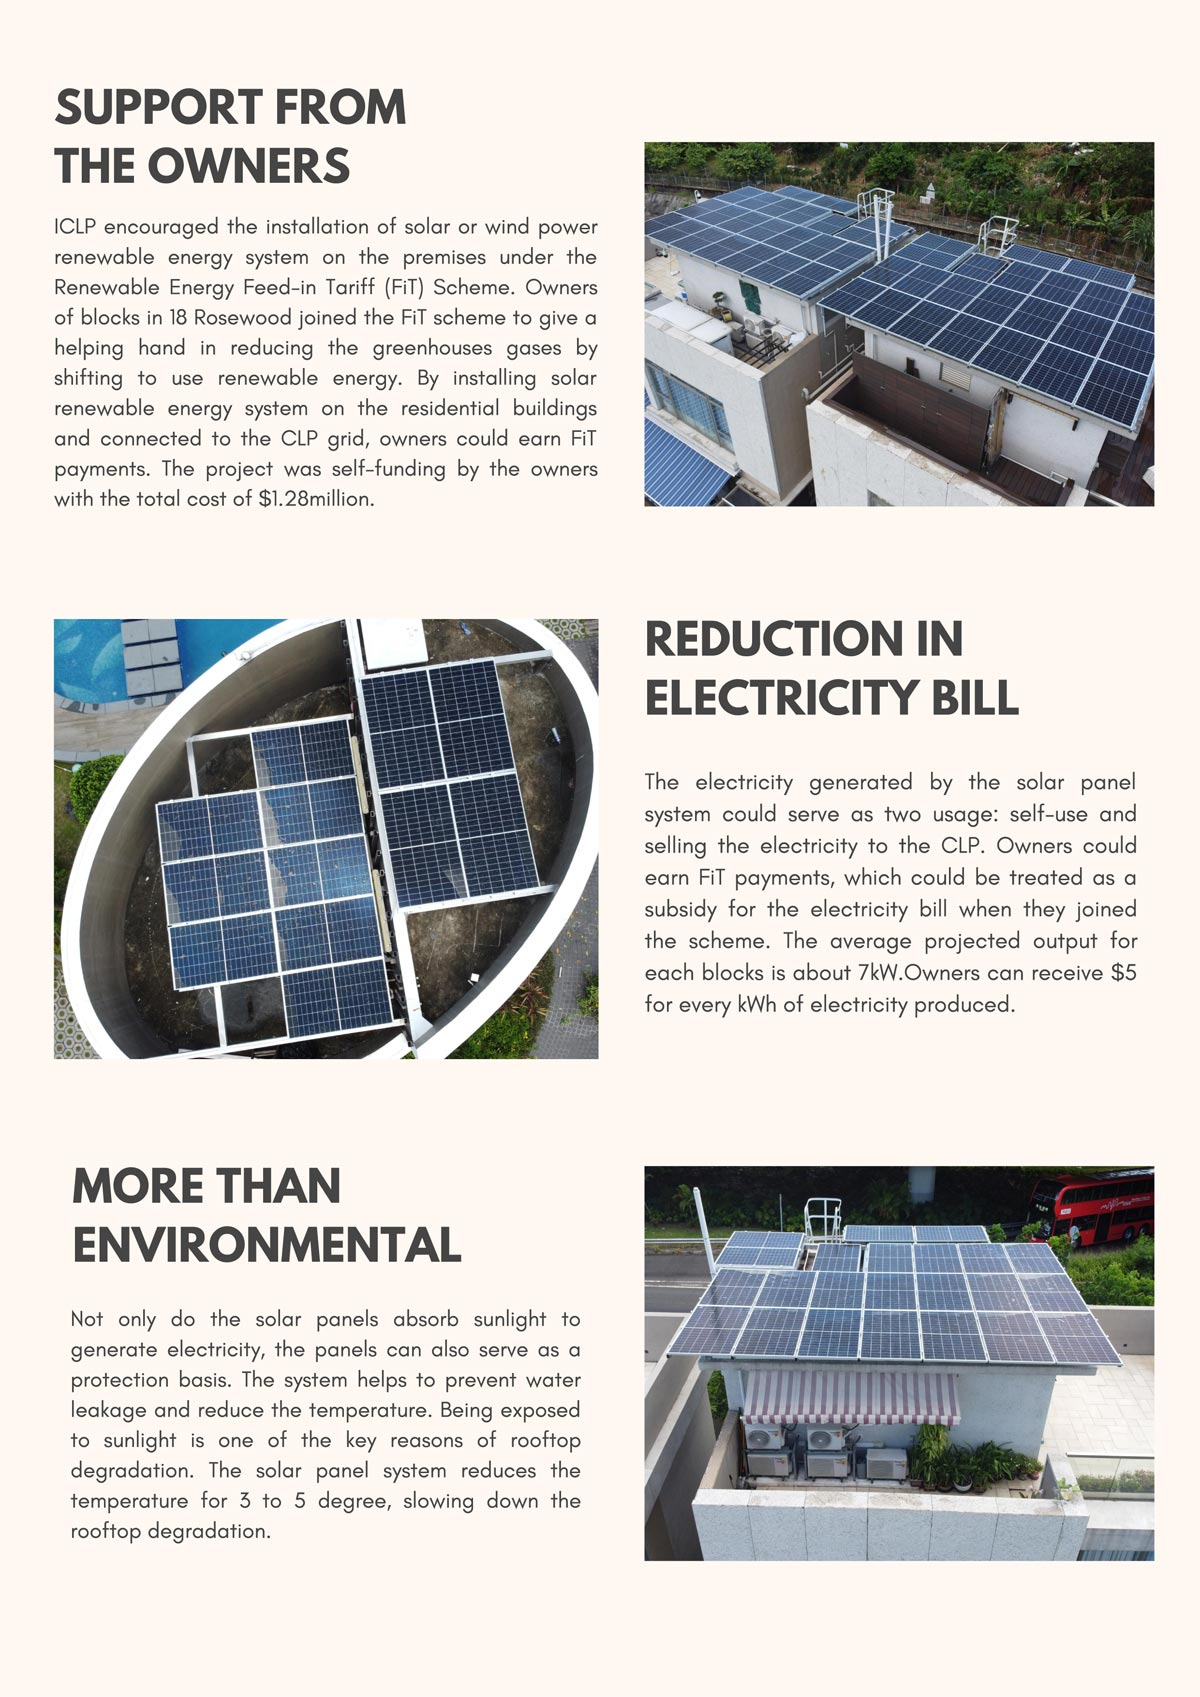 Solar Energy Investment|Hydroponics|EV Charging|E-Parking